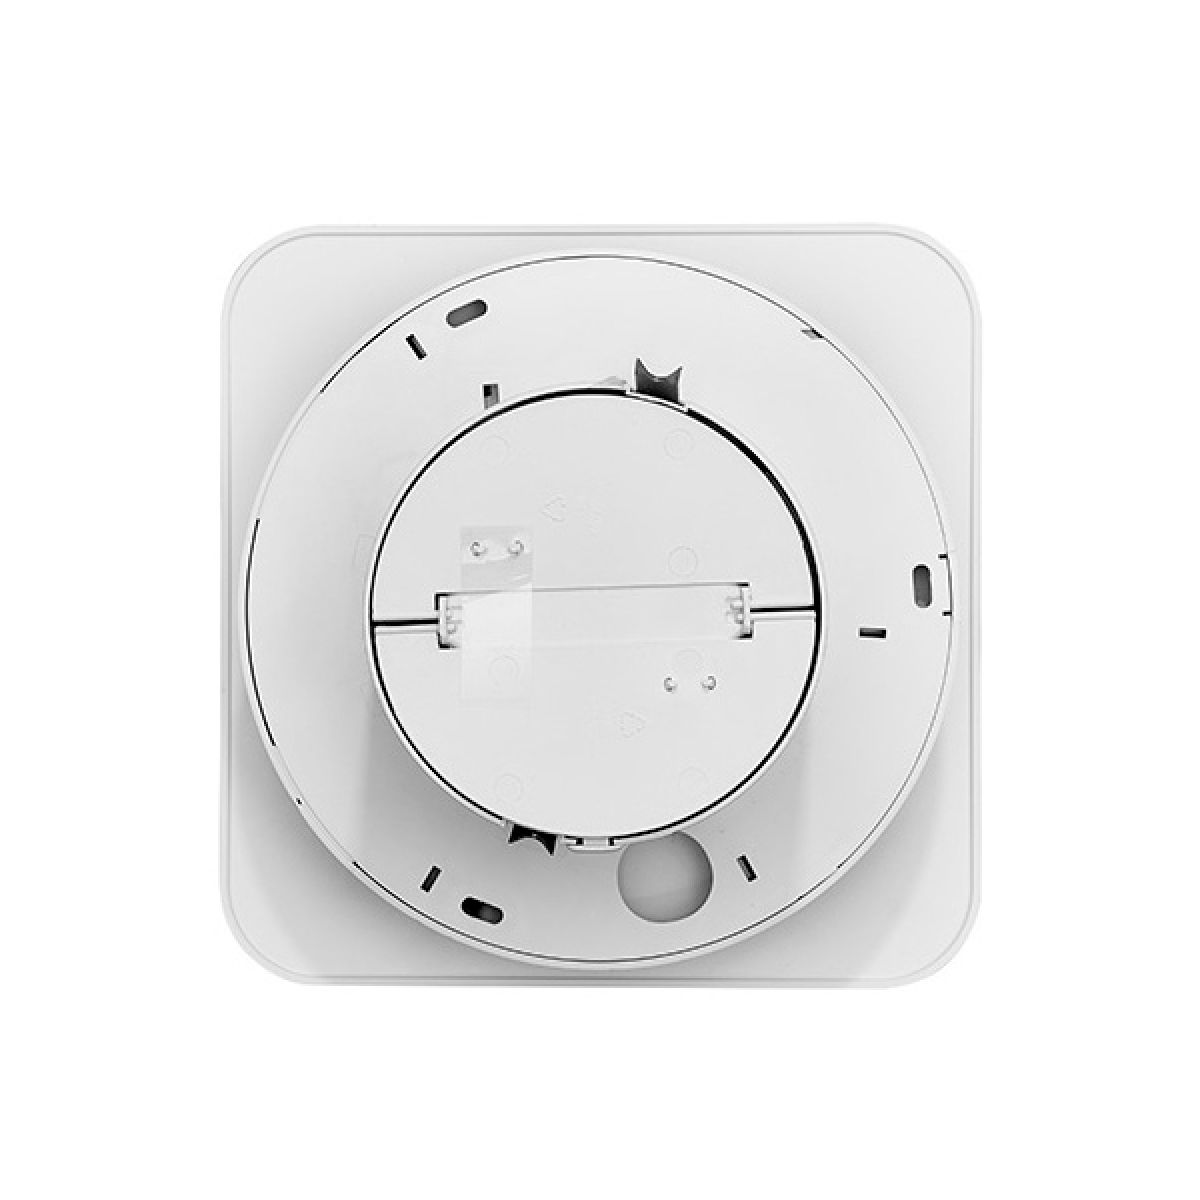 Xpelair Simply Silent Contour Square Bathroom Fan with Timer 100mm - Back